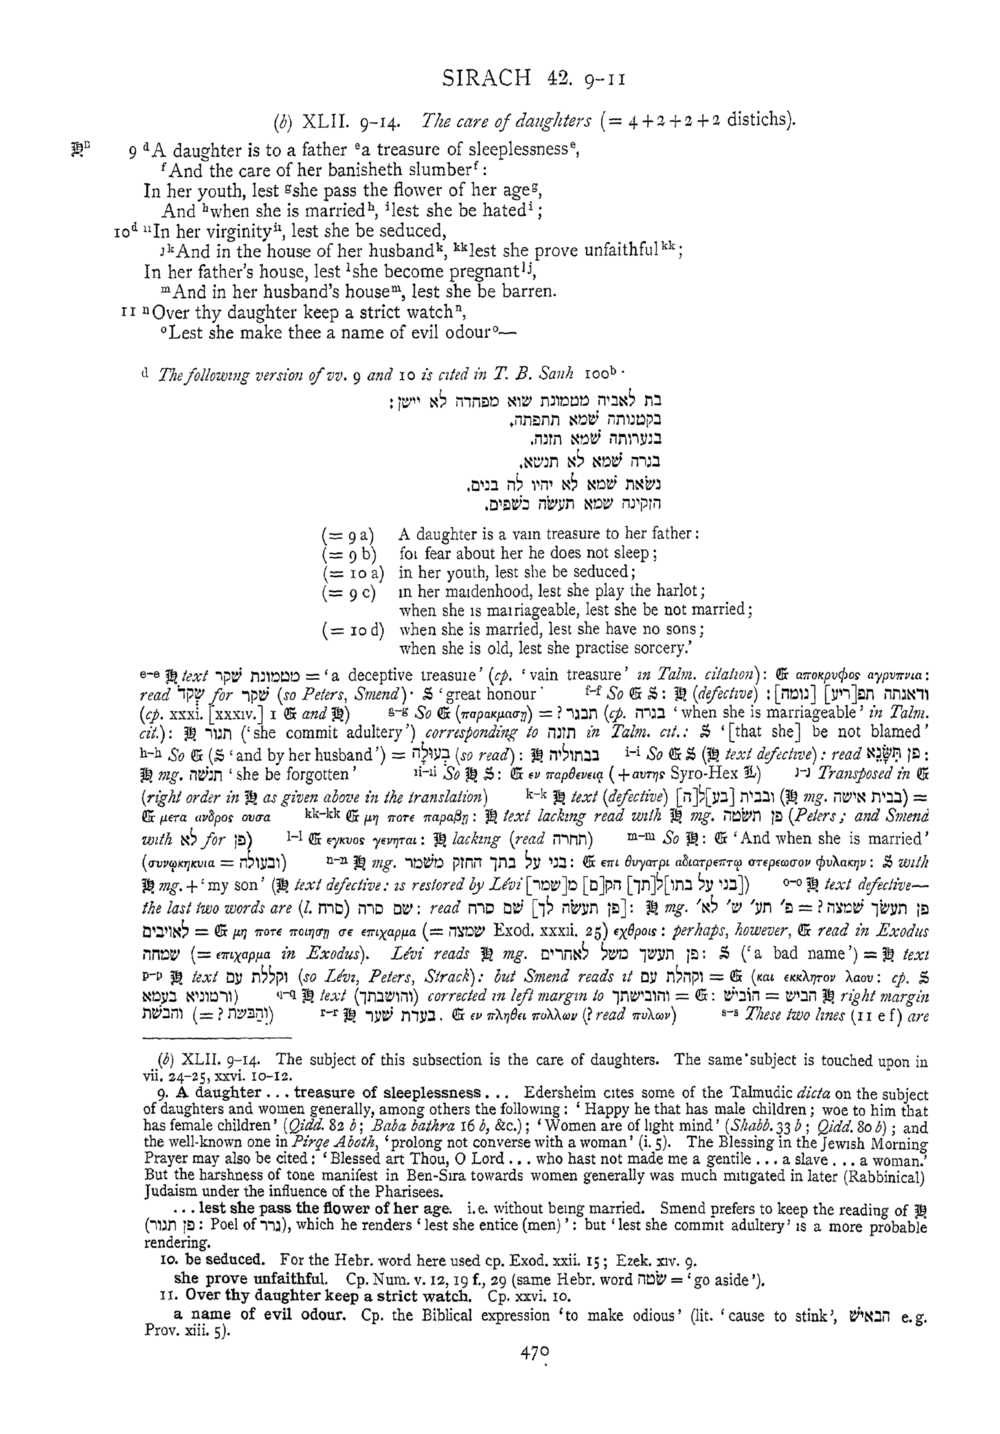 Image of page 470